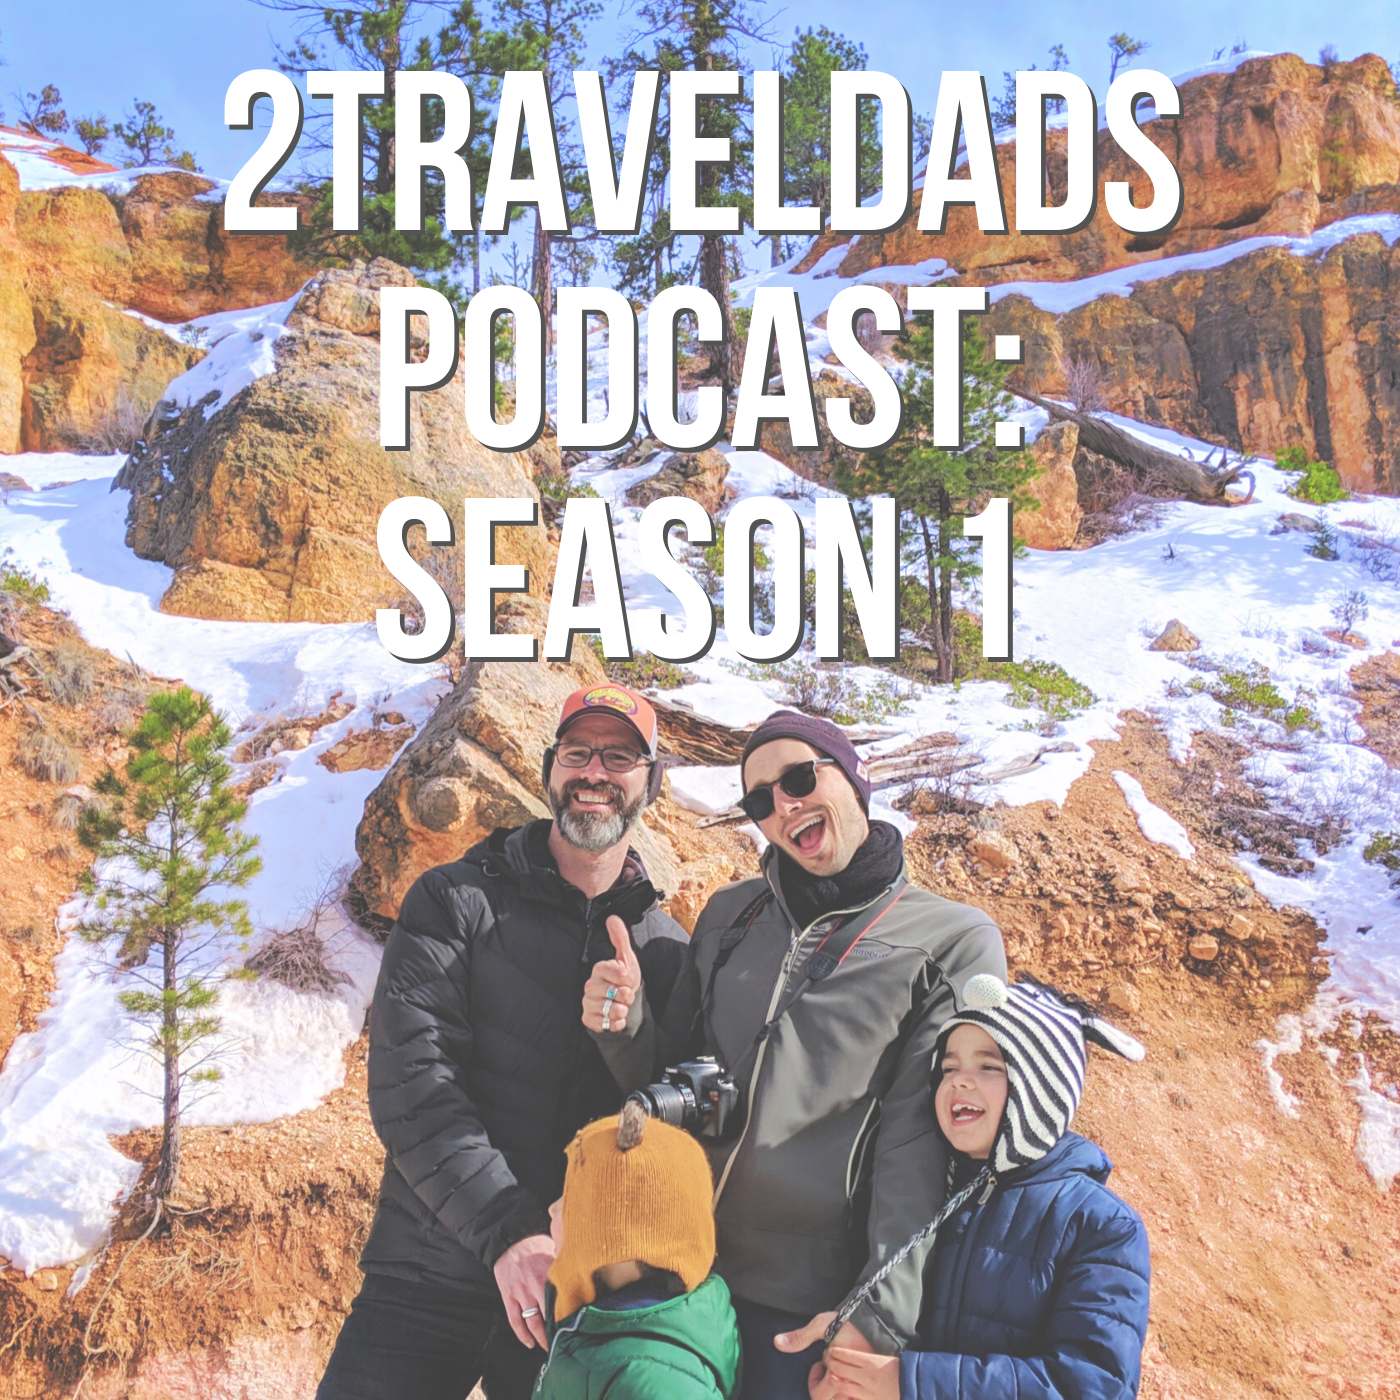 2Traveldads Podcast Season 1